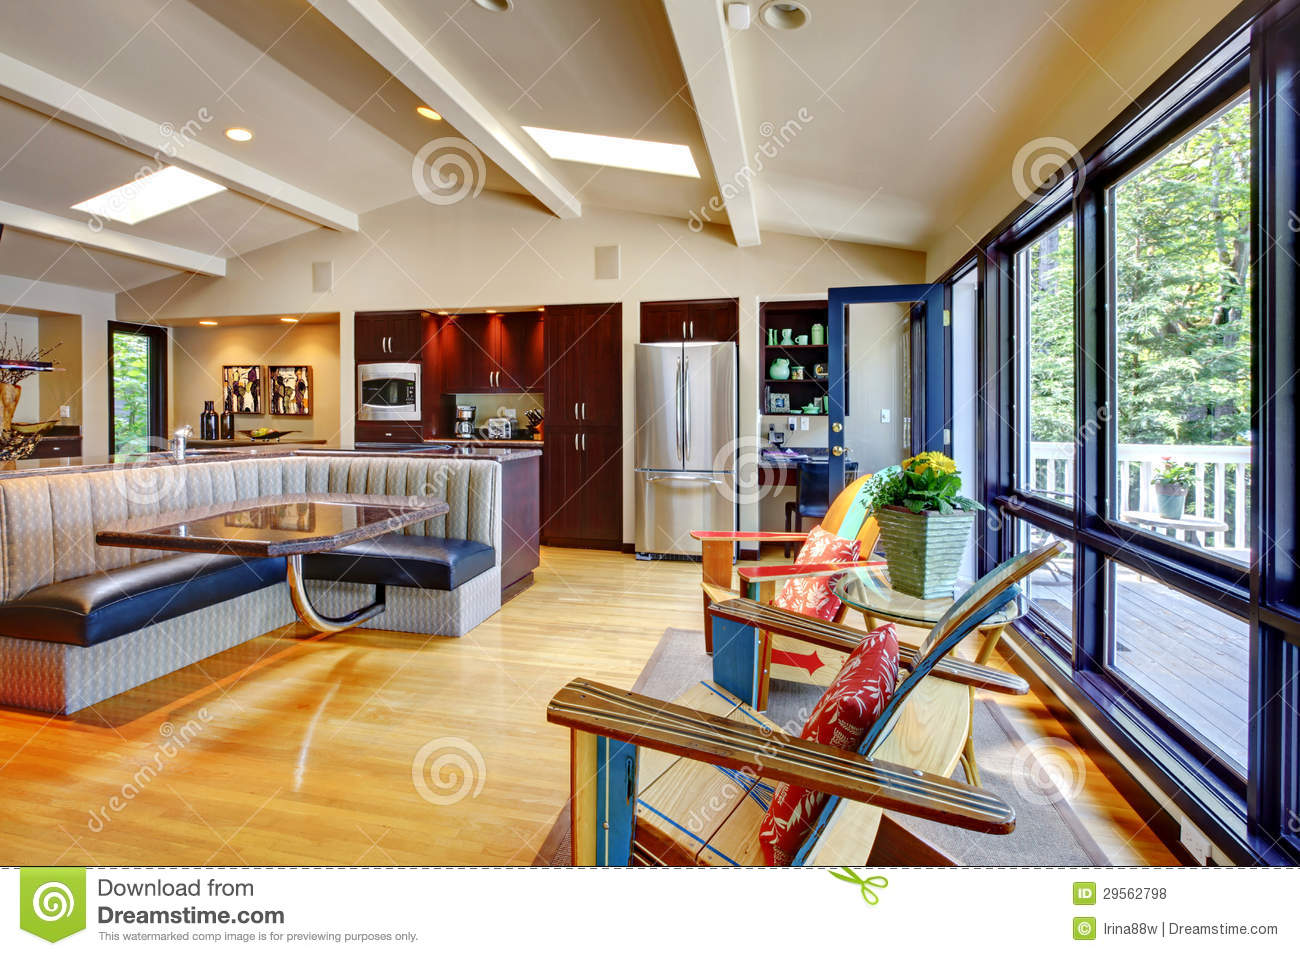 Open modern luxury home interior living room and kitchen royalty free stock photos image - Timeless contemporary luxury homes glamorous interior elements ...